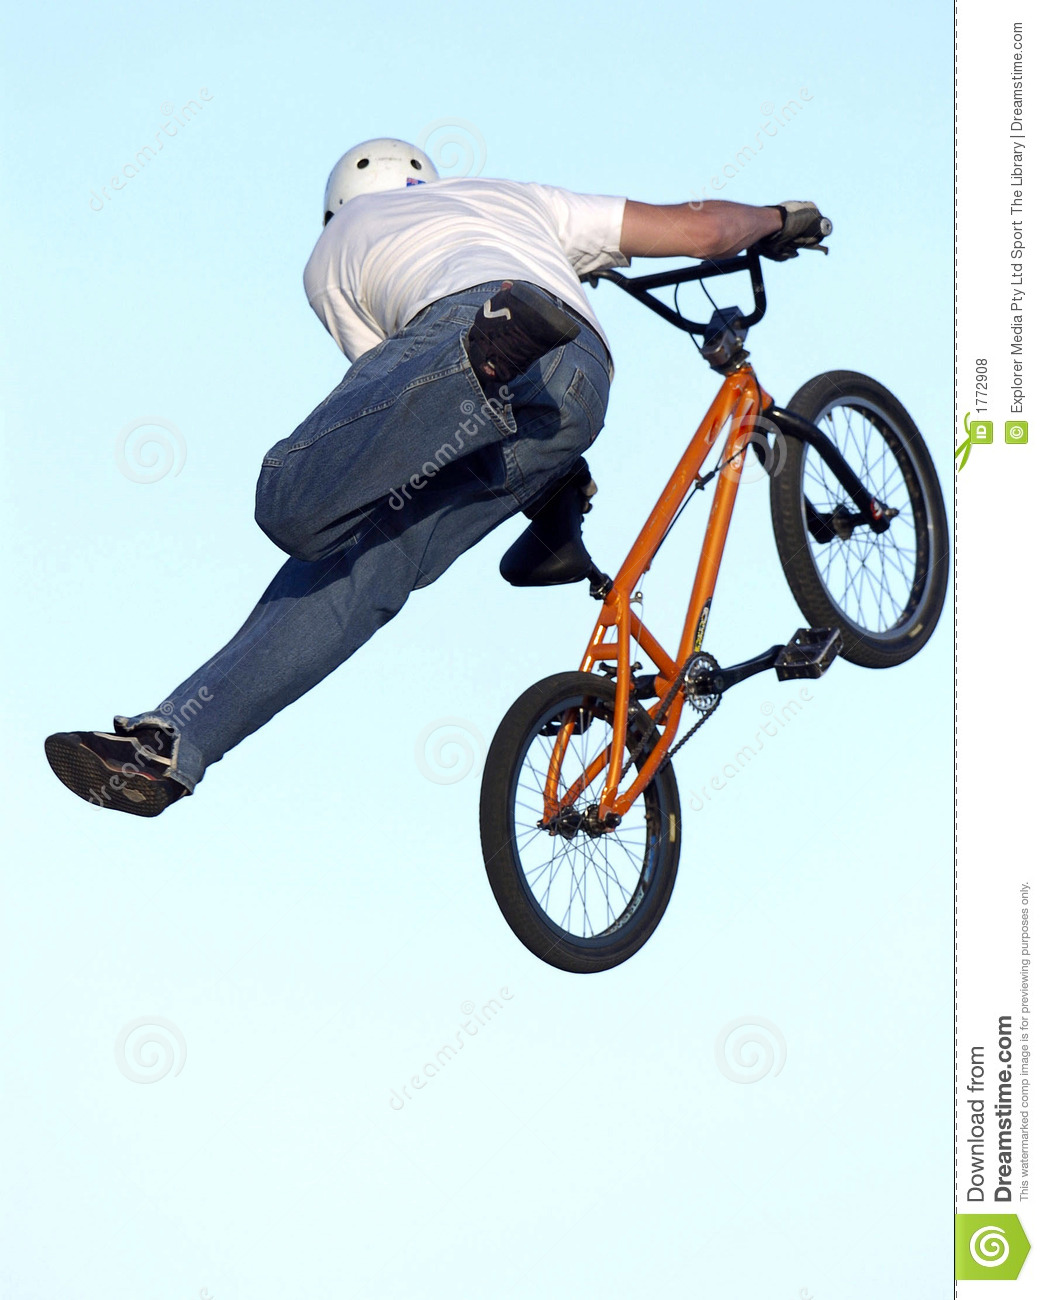 Bmx Art 007 Royalty Free Stock Photos   Image  1772908